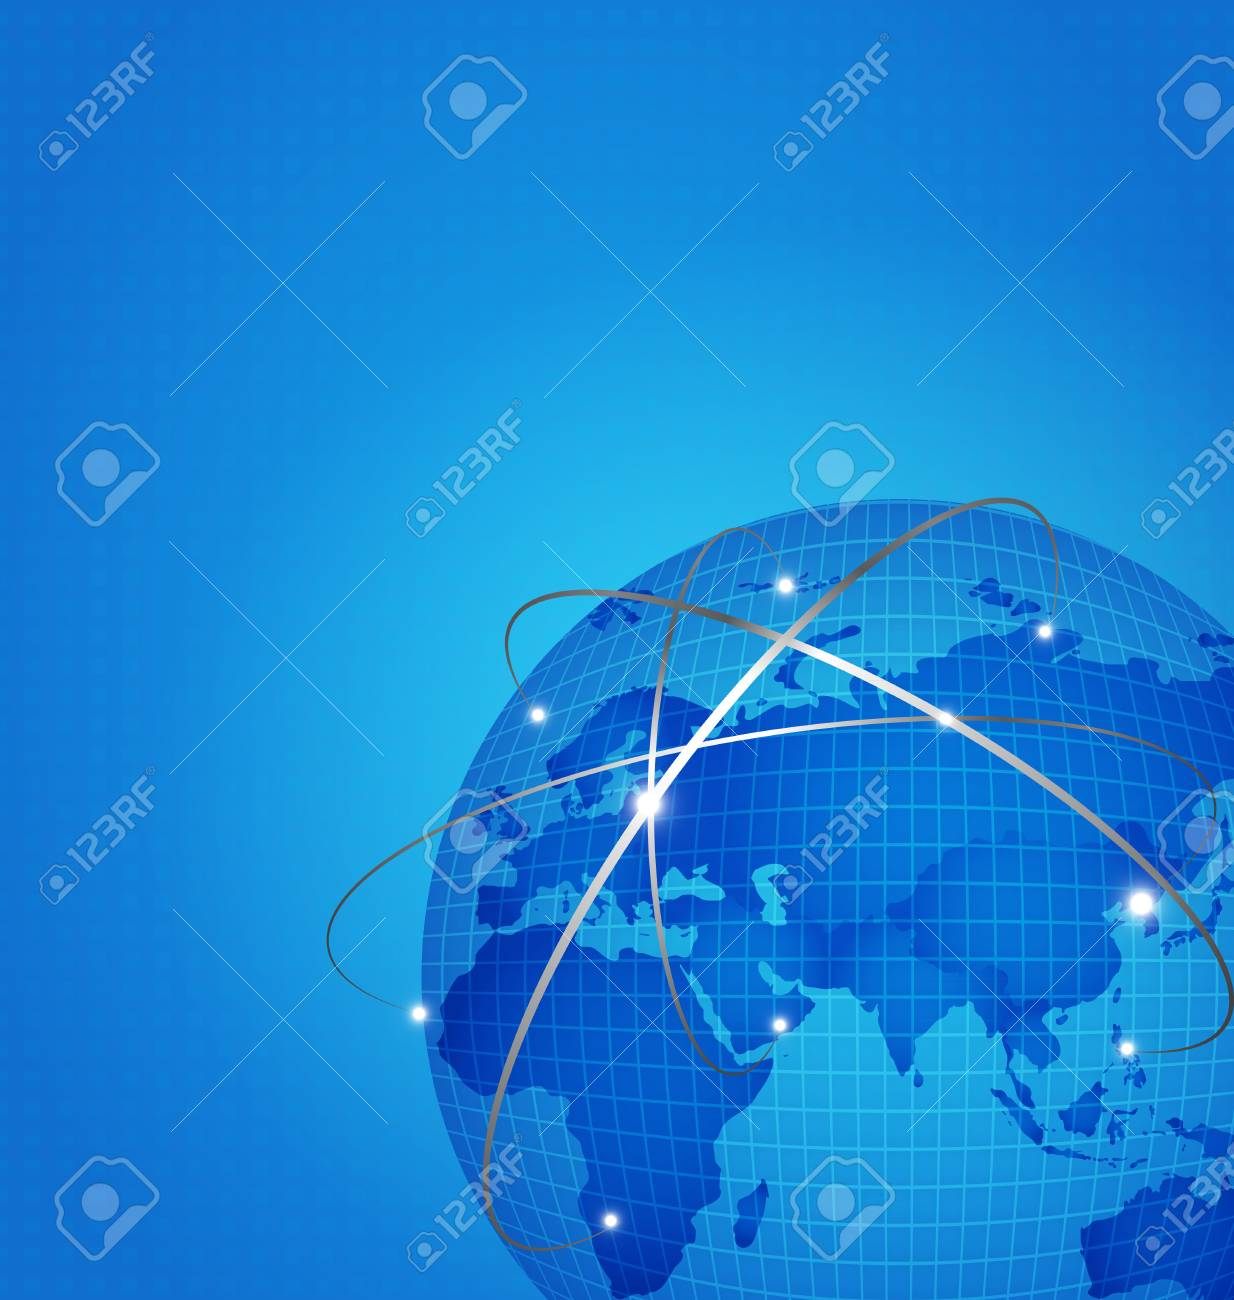 Global technology network with dot digital world map vector stock global technology network with dot digital world map vector illustration stock illustration 61178779 gumiabroncs Gallery